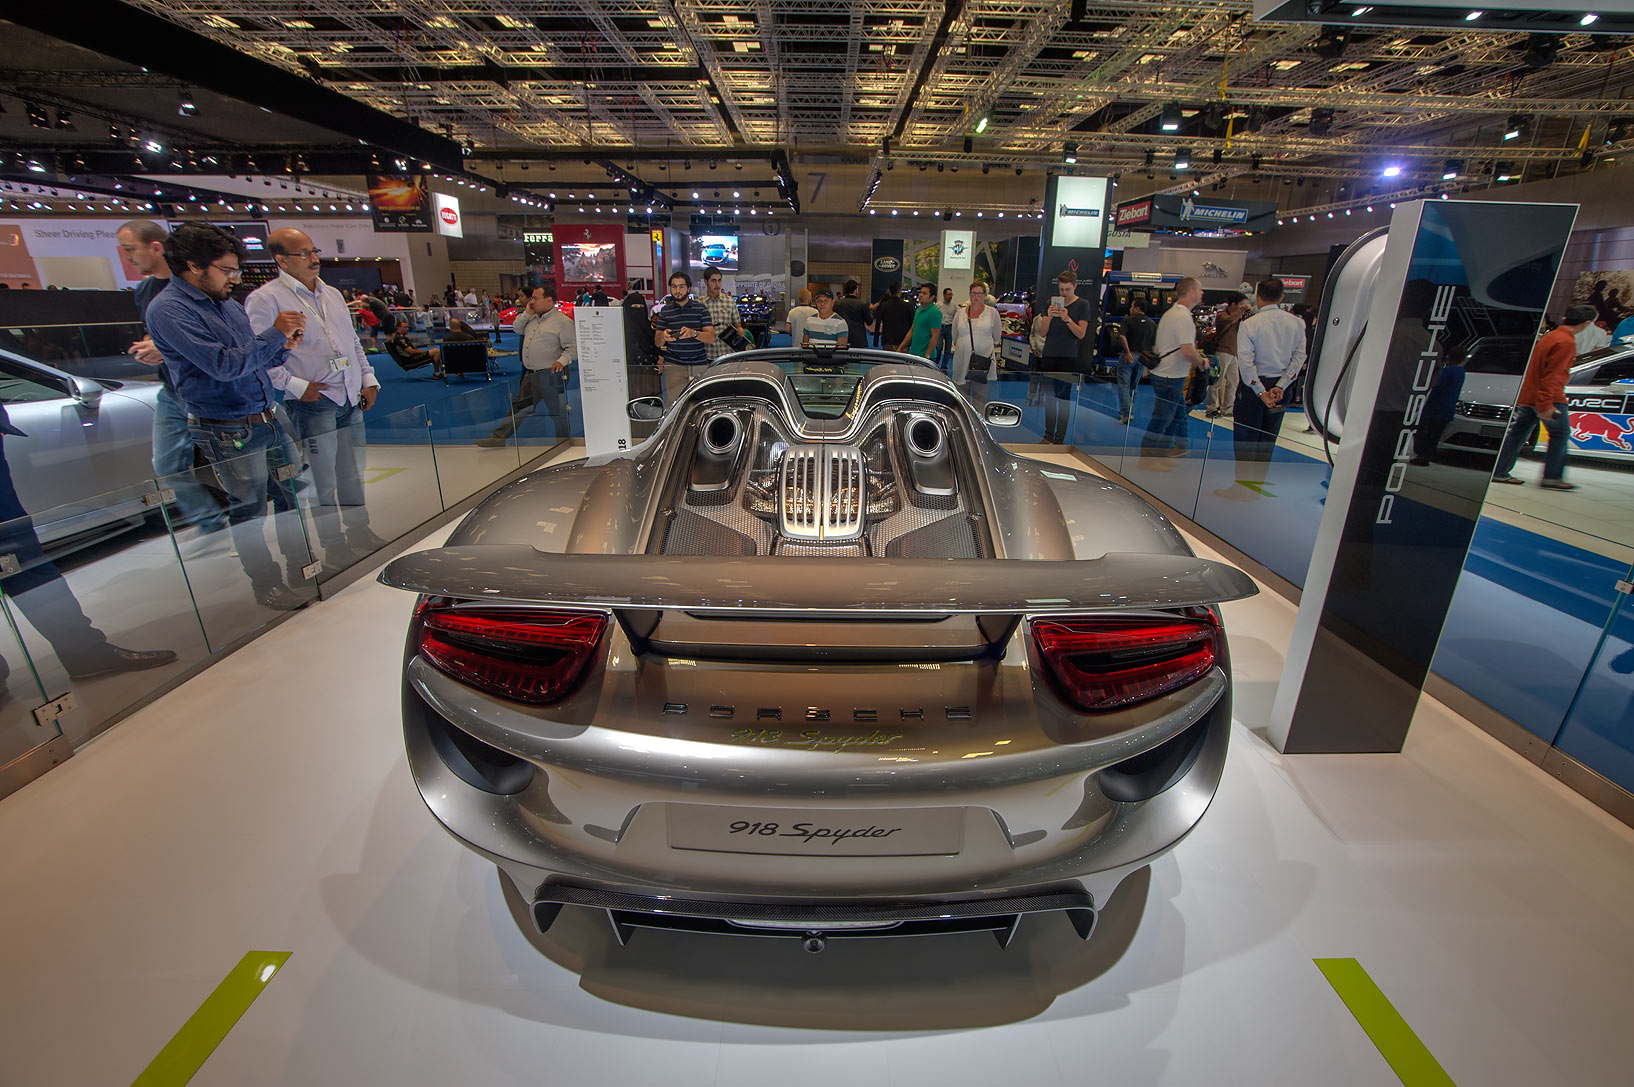 Back view of 918 Spyder Porsche car on motor show...Convention Centre. Doha, Qatar